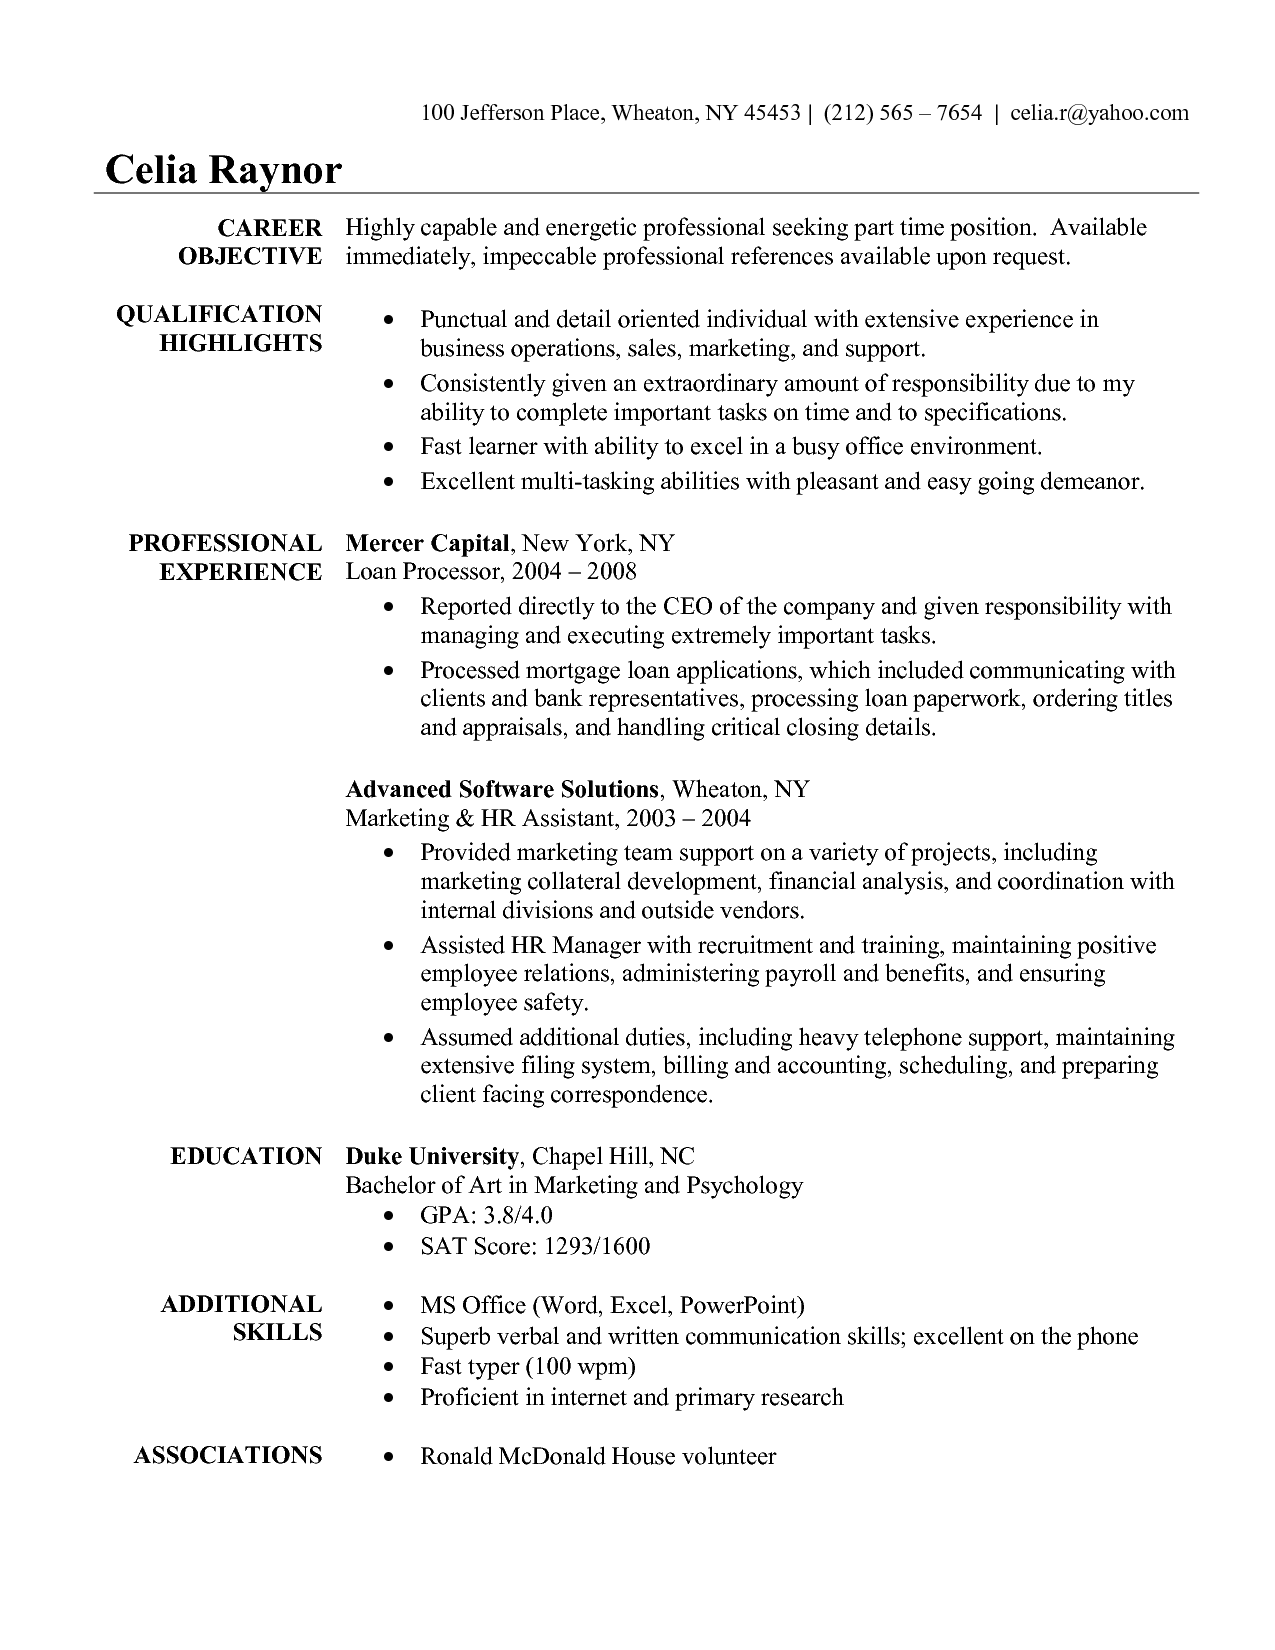 1000 Images About Resume On Pinterest Sample Resume Administrative ...